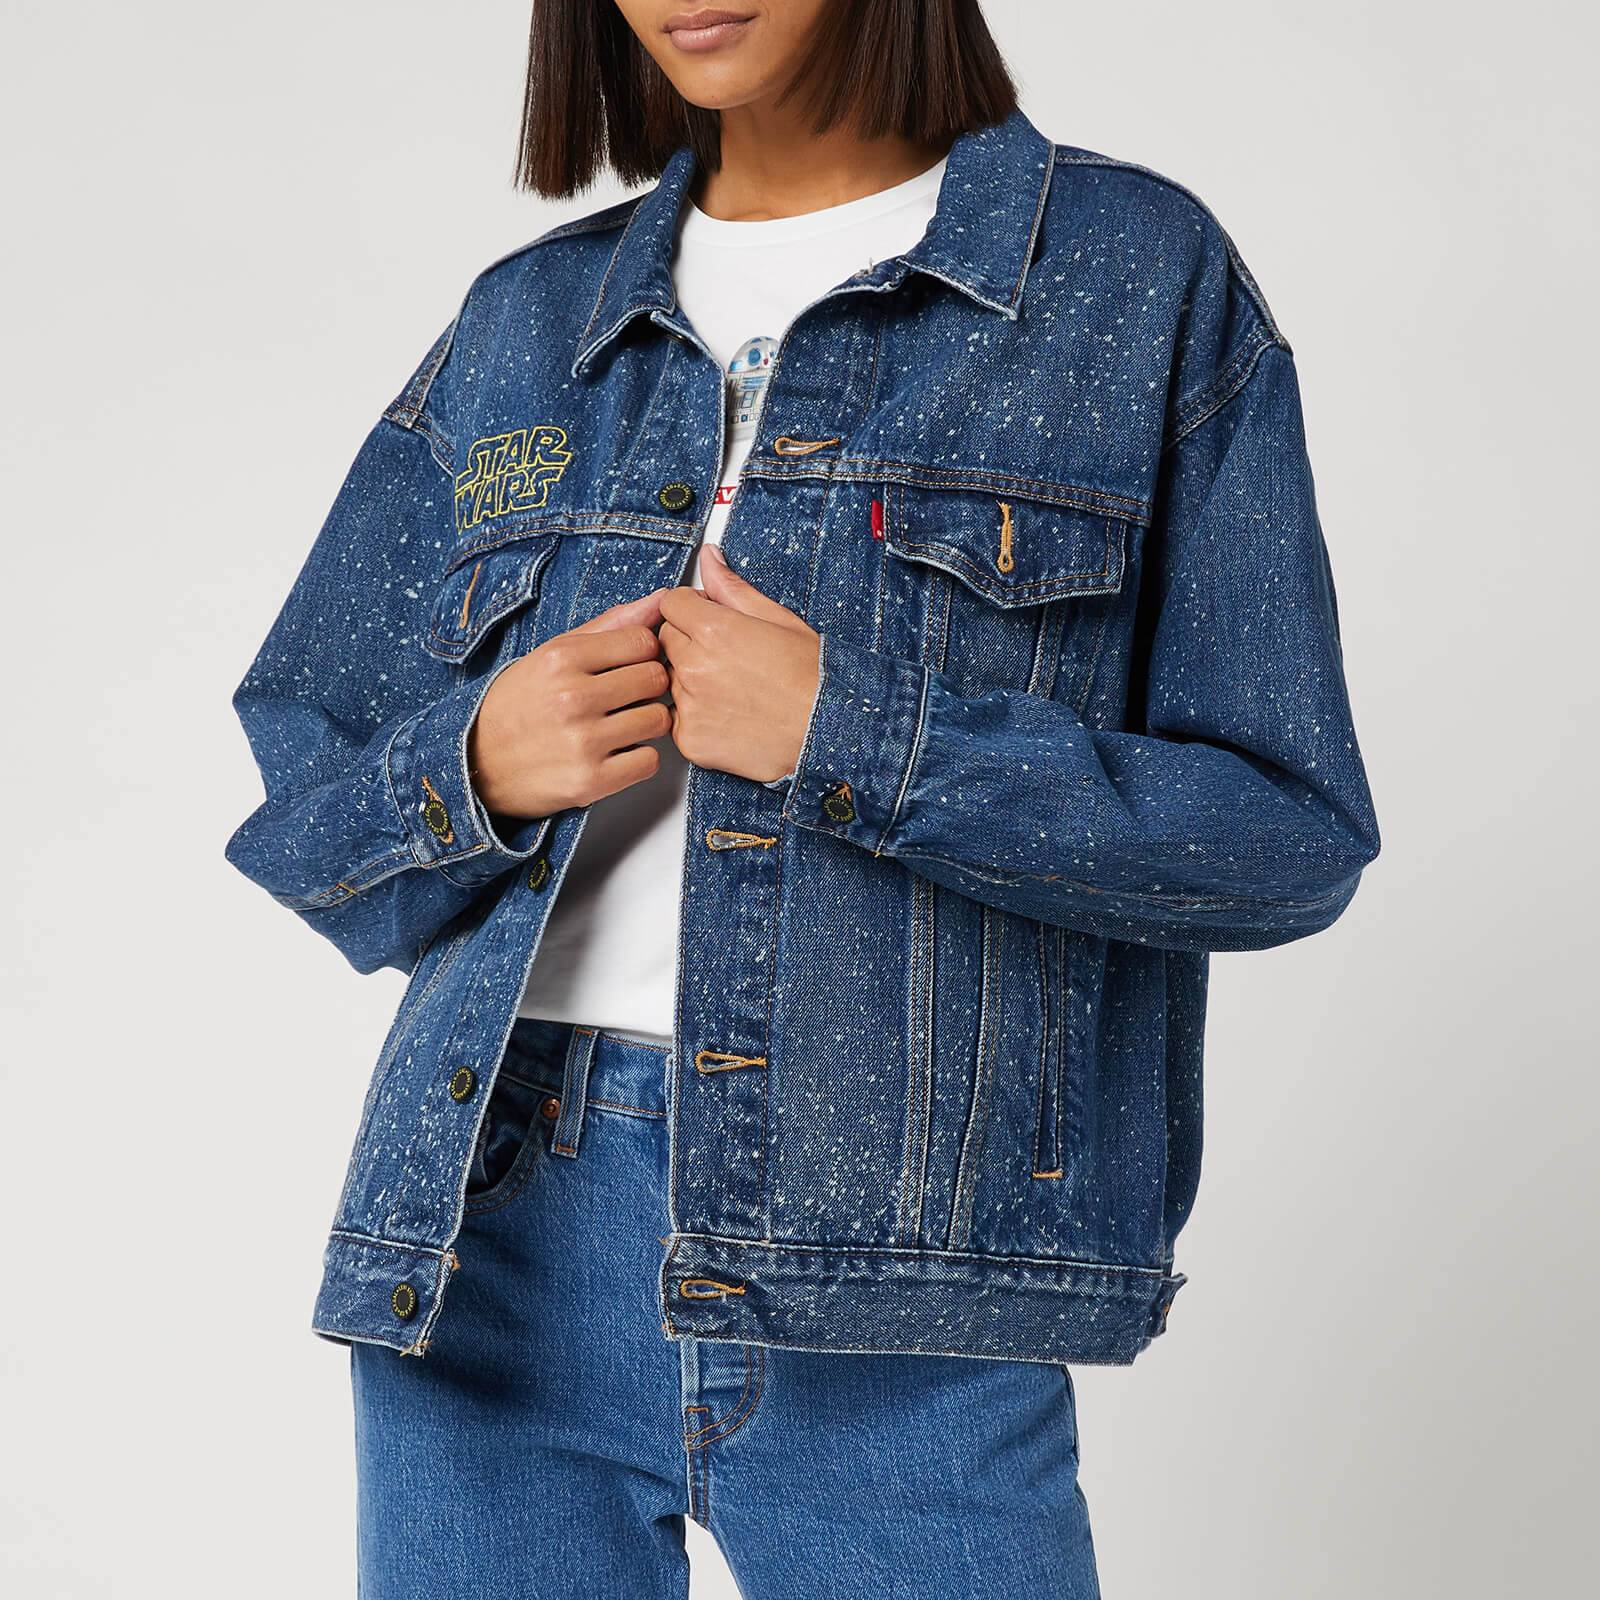 Levi's Star Wars Women's Dad Trucker Jacket - May The Force Be with You - XS